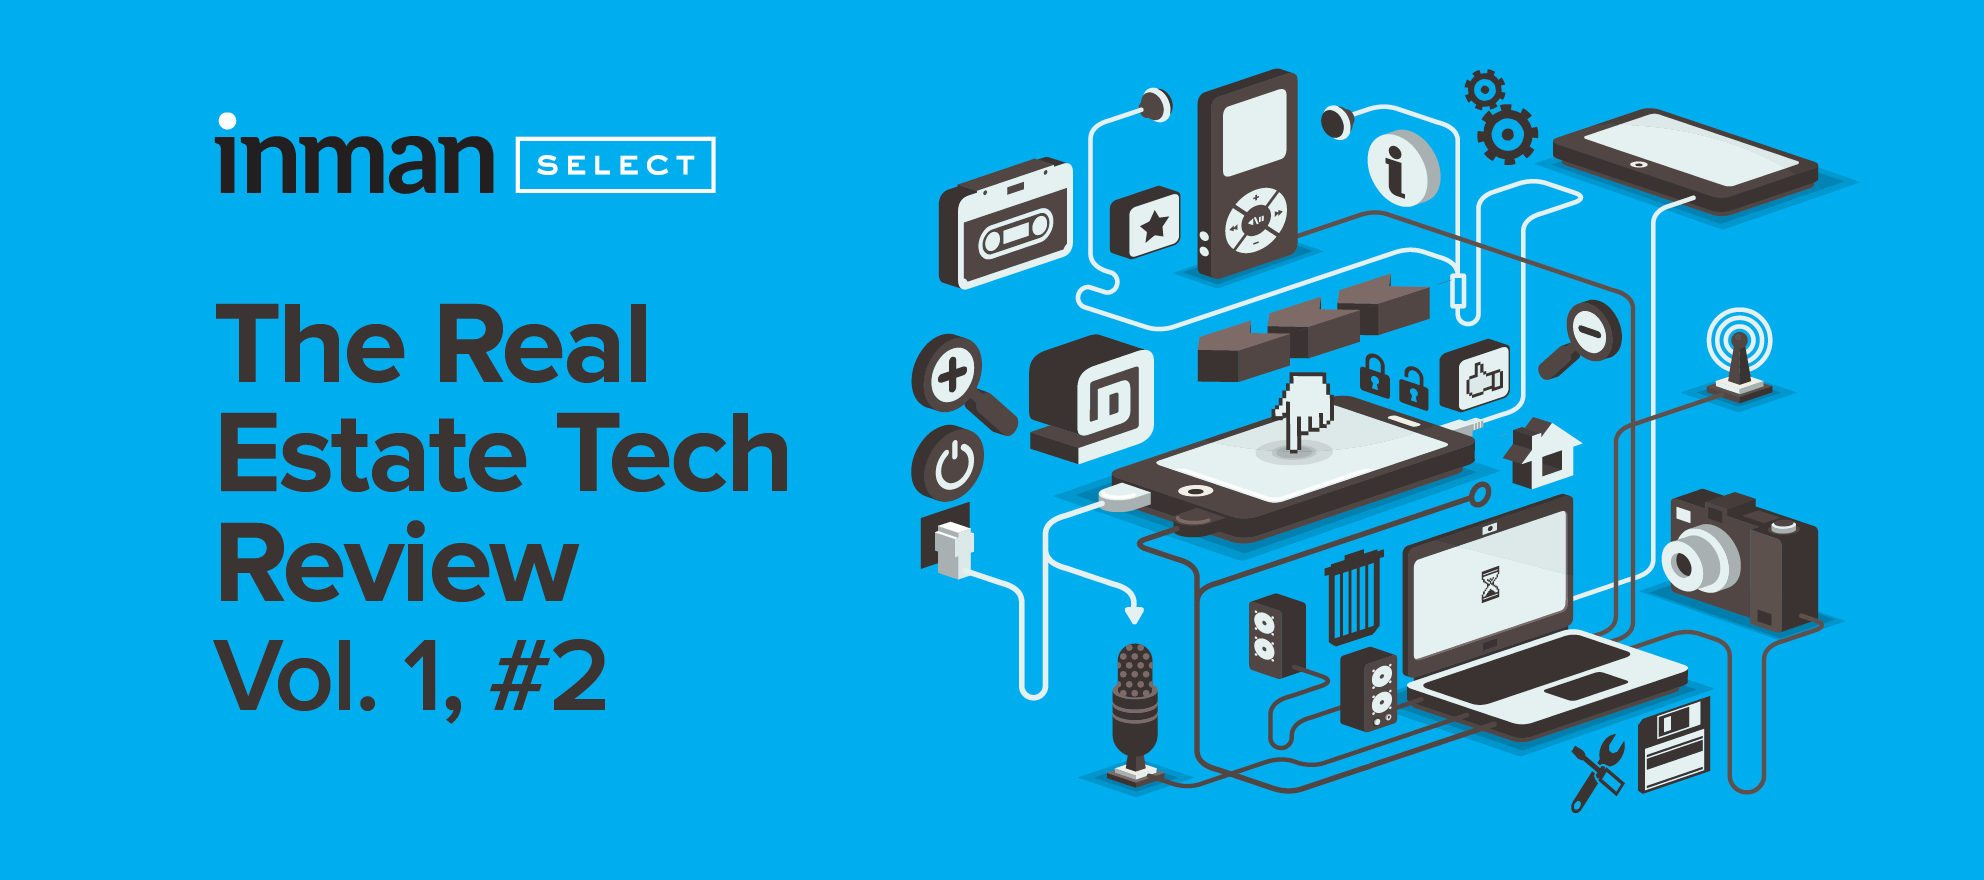 33 tech reviews in one easy-to-download e-book